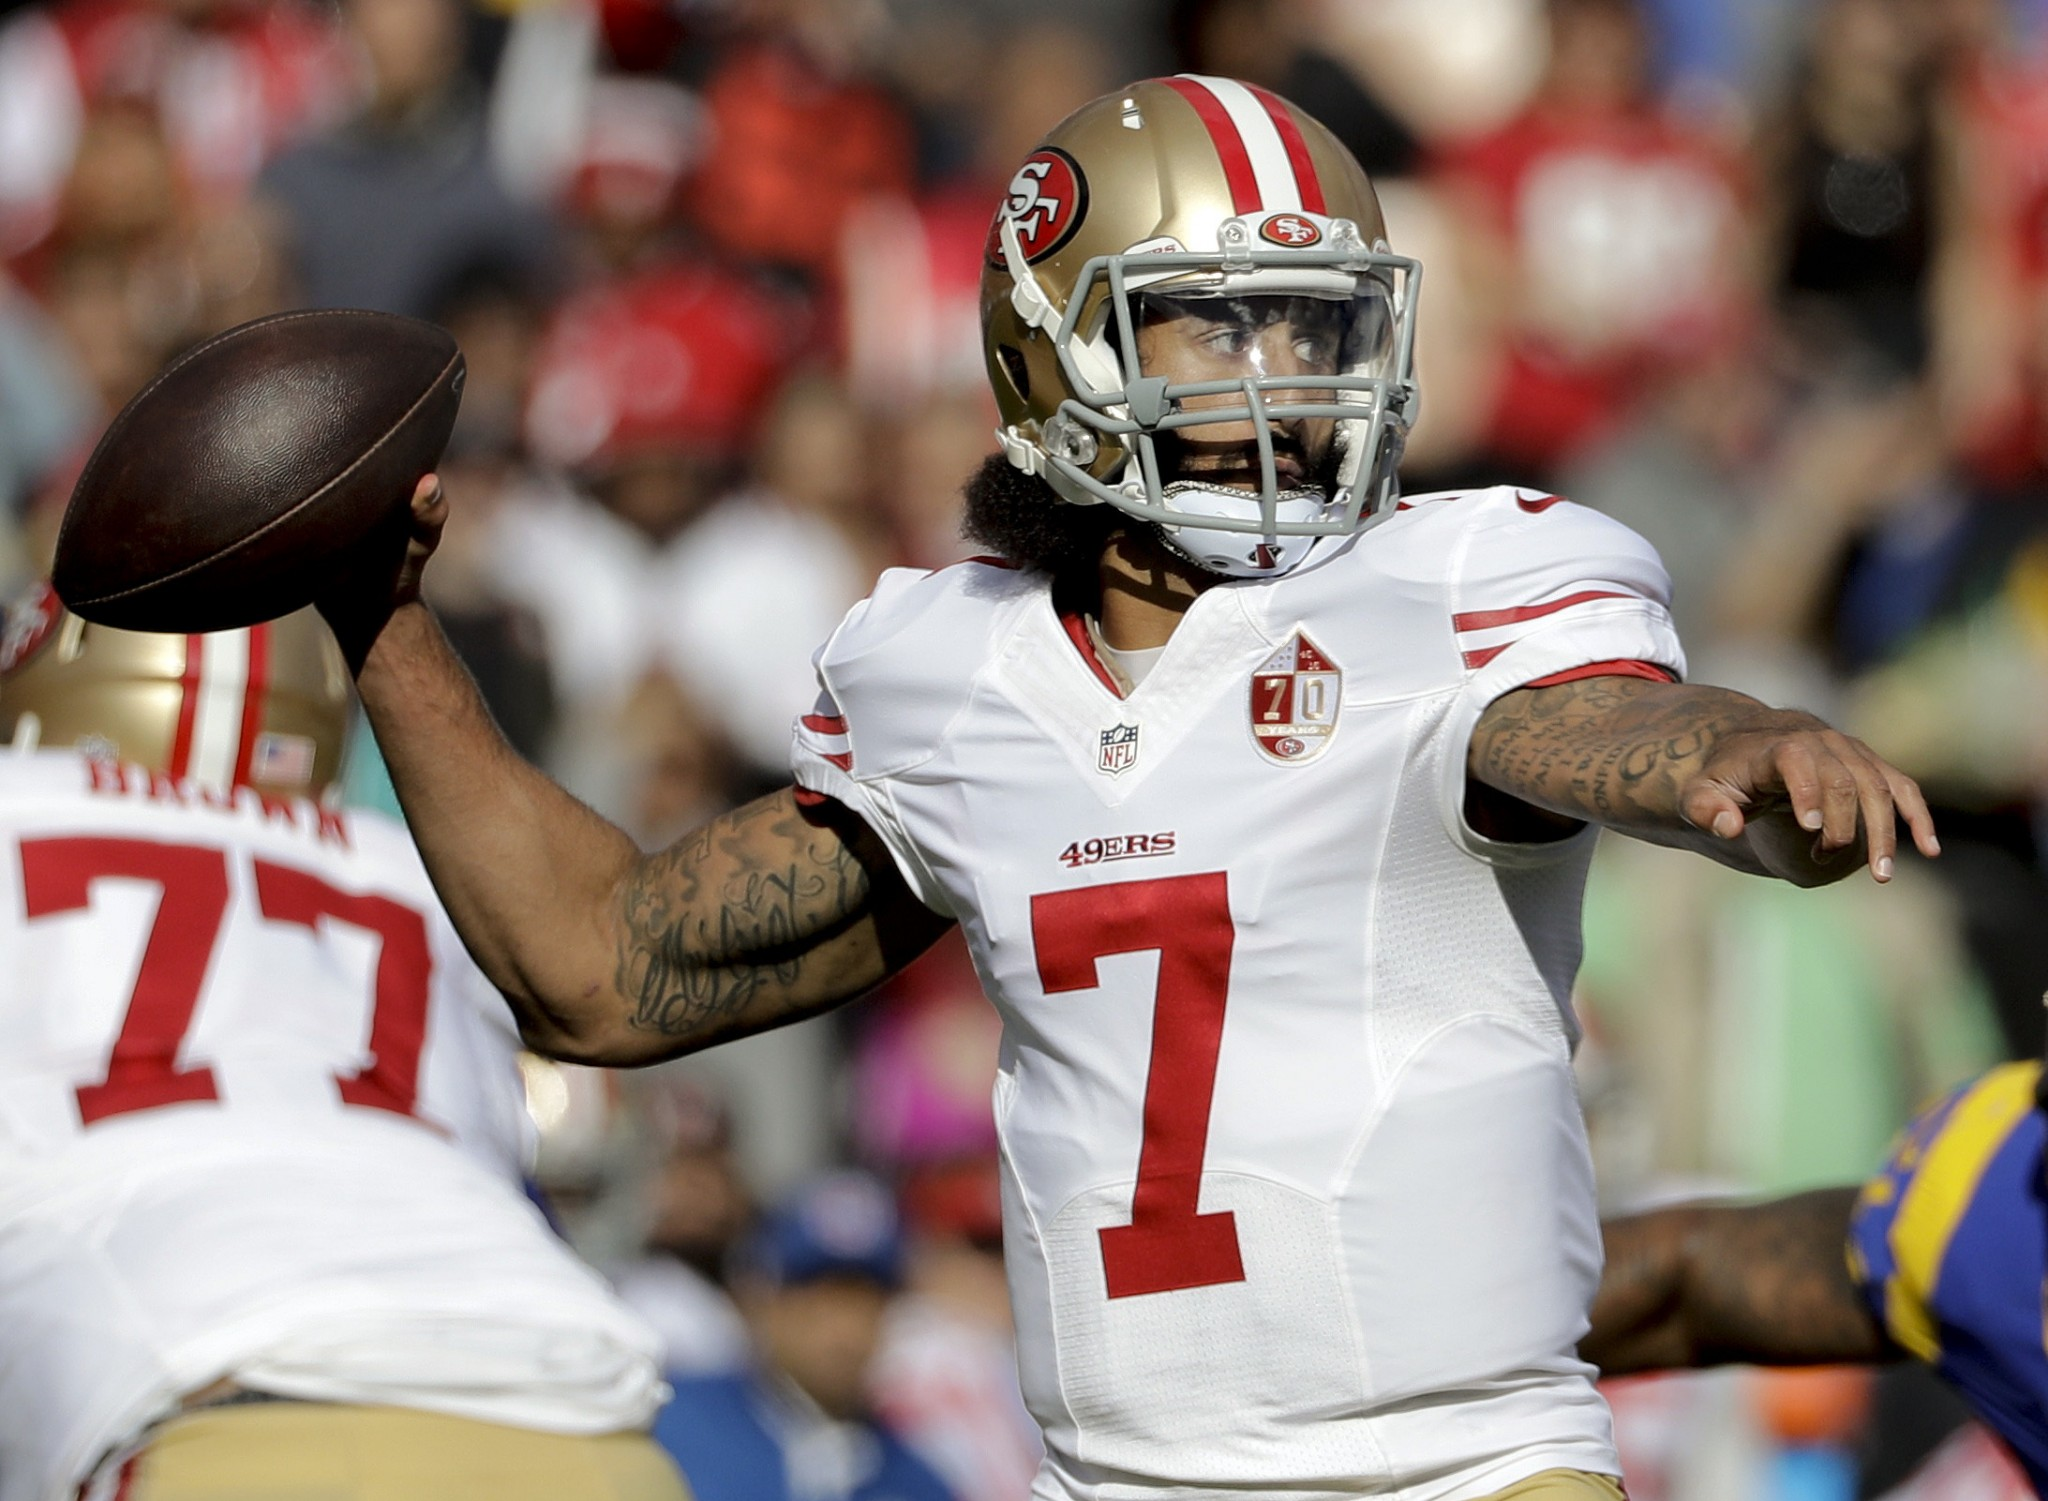 Goodell on talking to Kaepernick: 'Not something I've thought about'